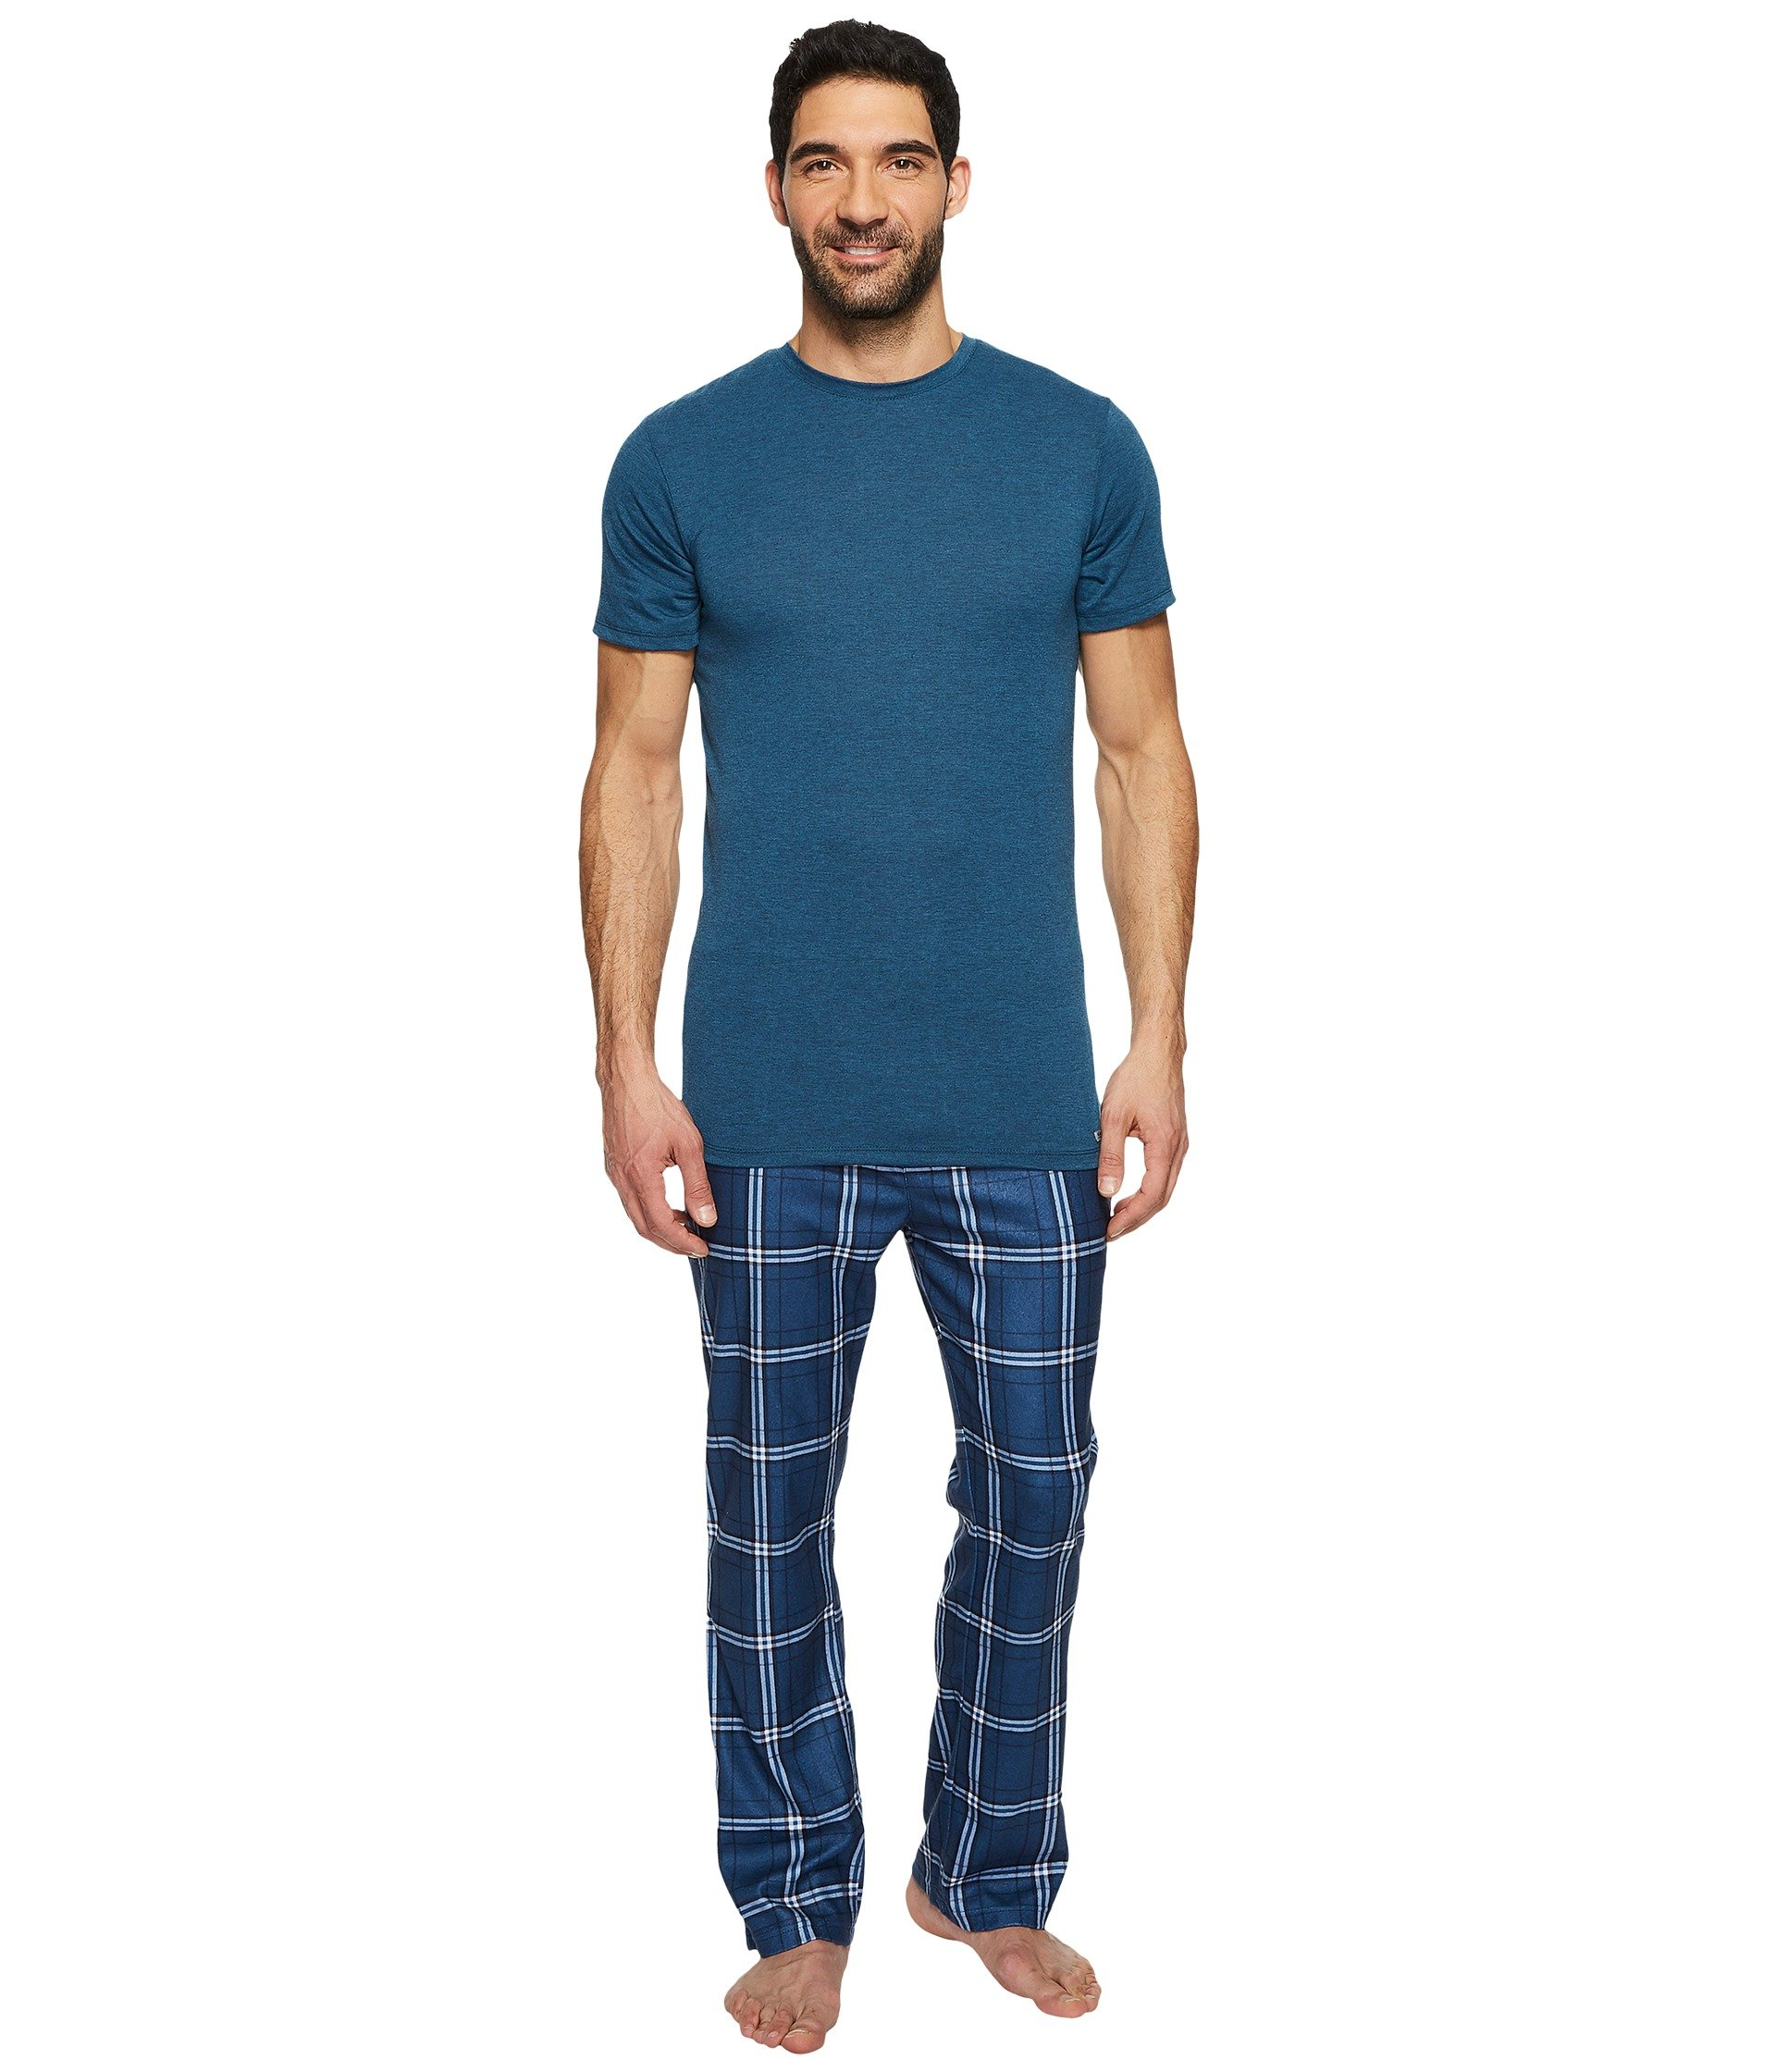 Pijama para Hombre Kenneth Cole Reaction Poly Sleep Set  + Kenneth Cole Reaction en VeoyCompro.net